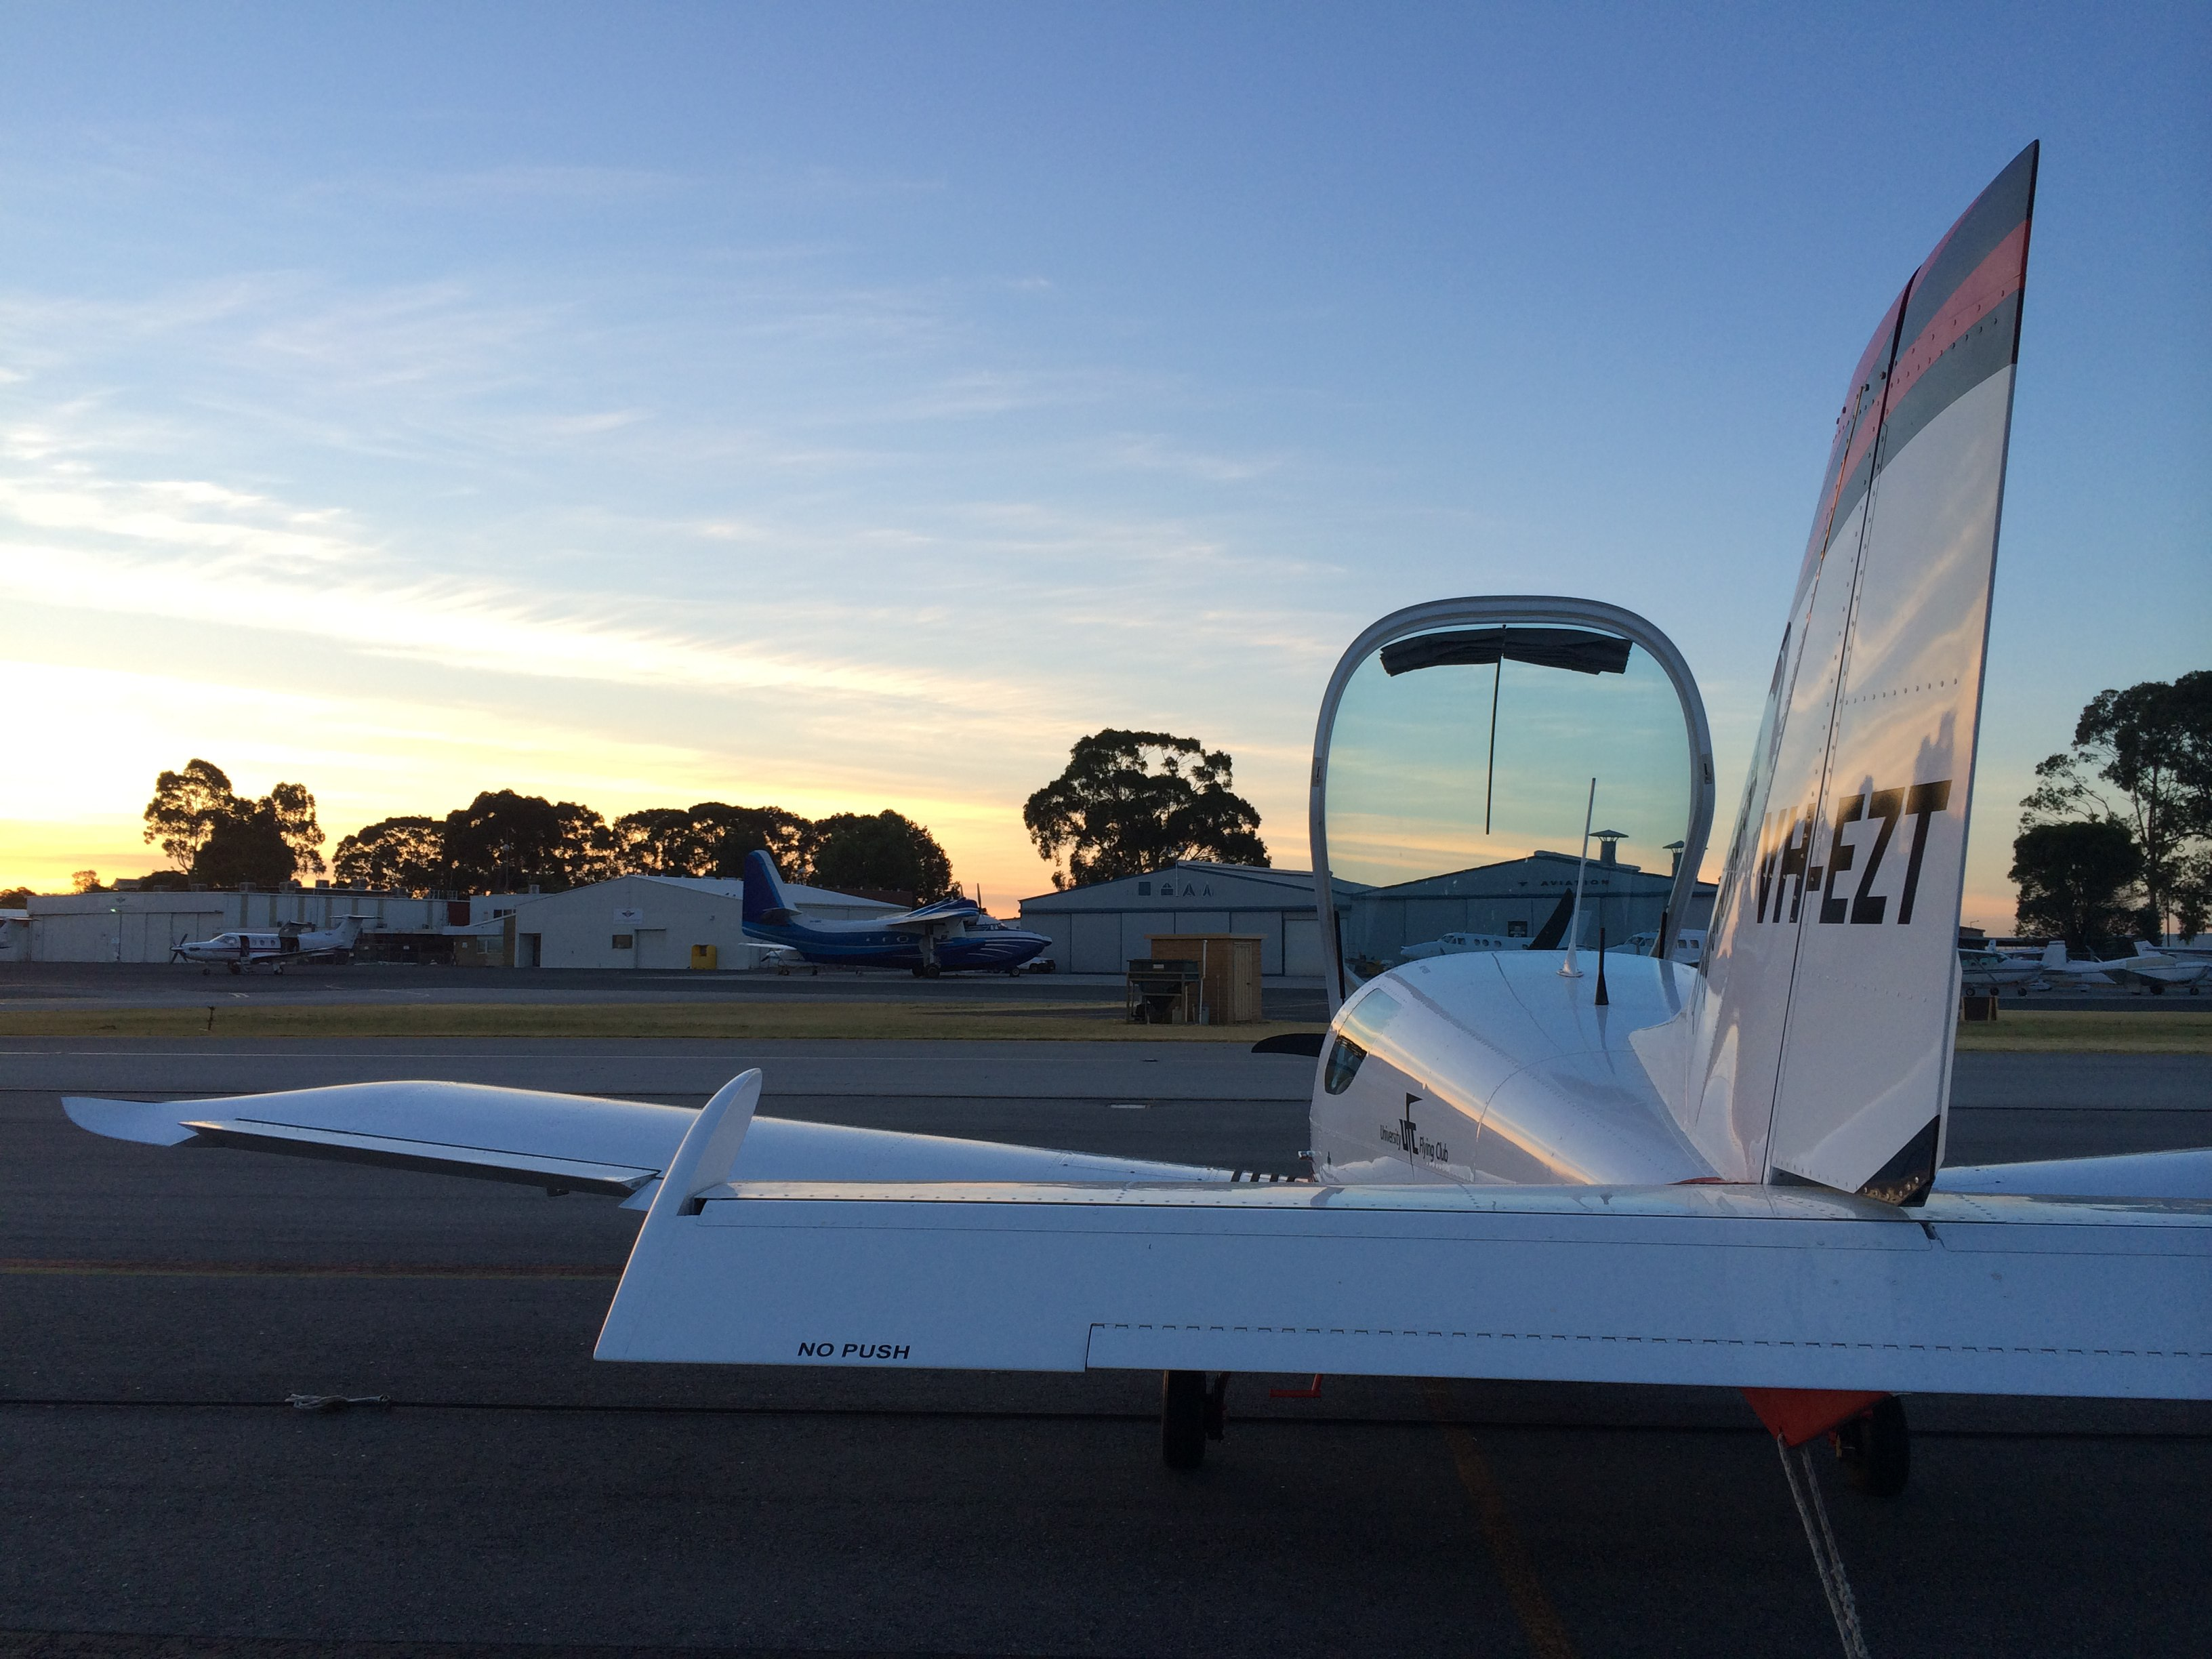 VH-EZT-flight-training-jandakot-flying-club-learn-to-fly-trial-flight-scenic-flight-private-hire-aircraft